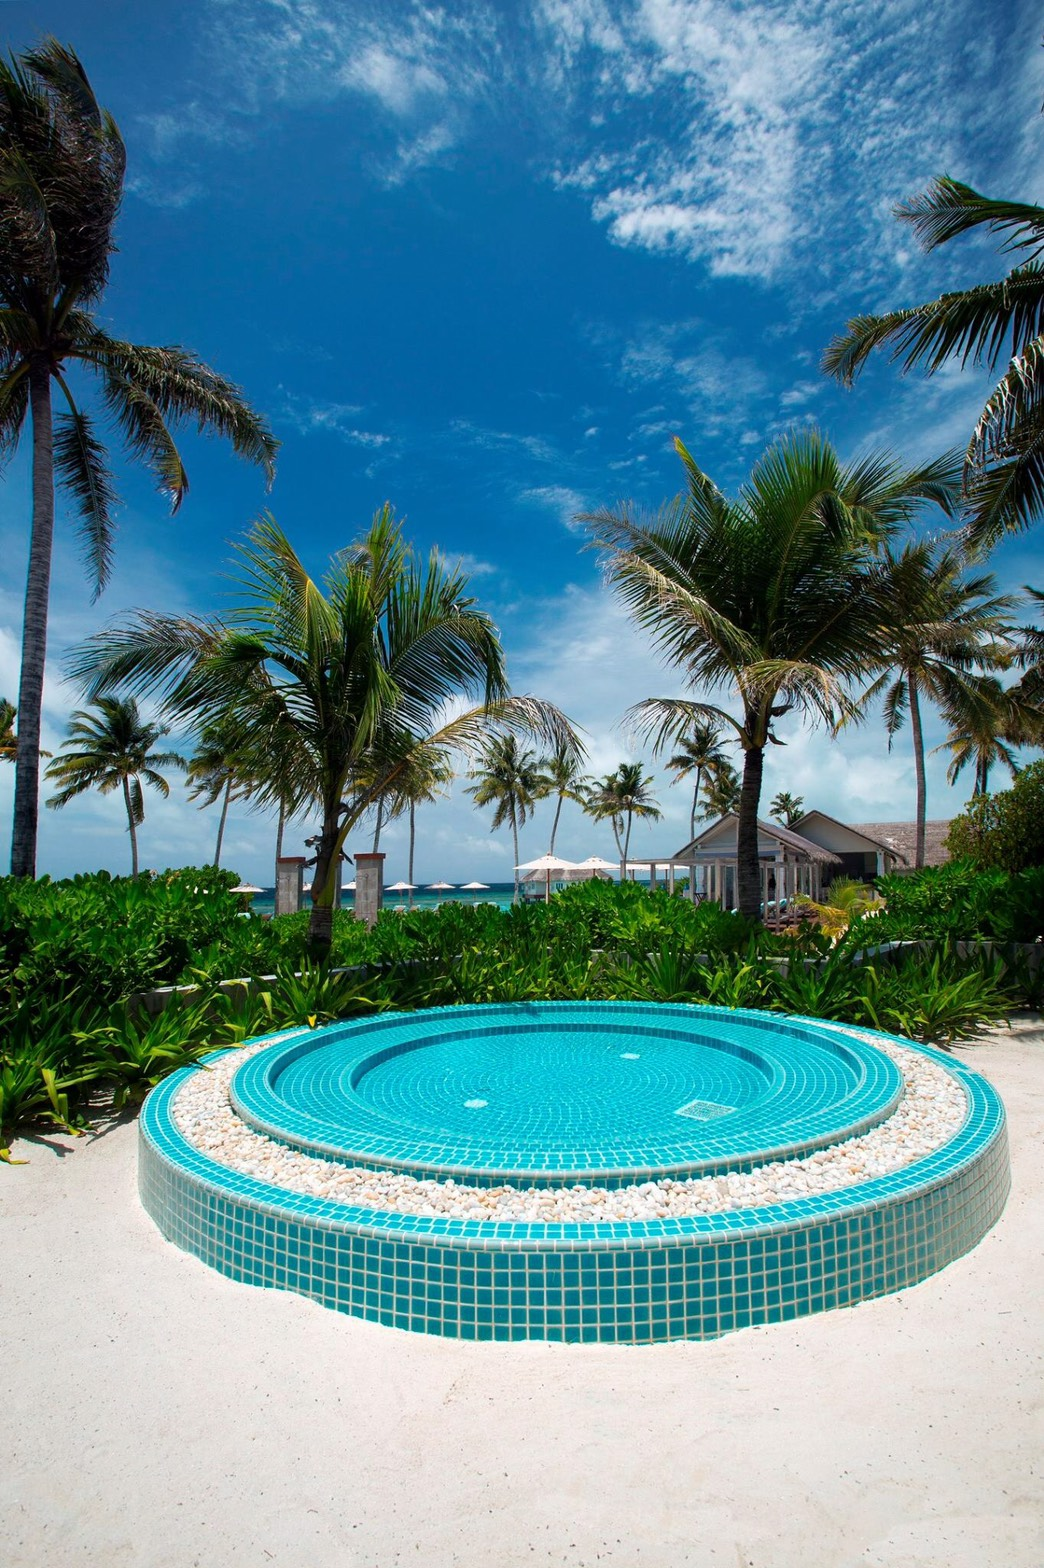 Swimming pool tiles Maldive Project.